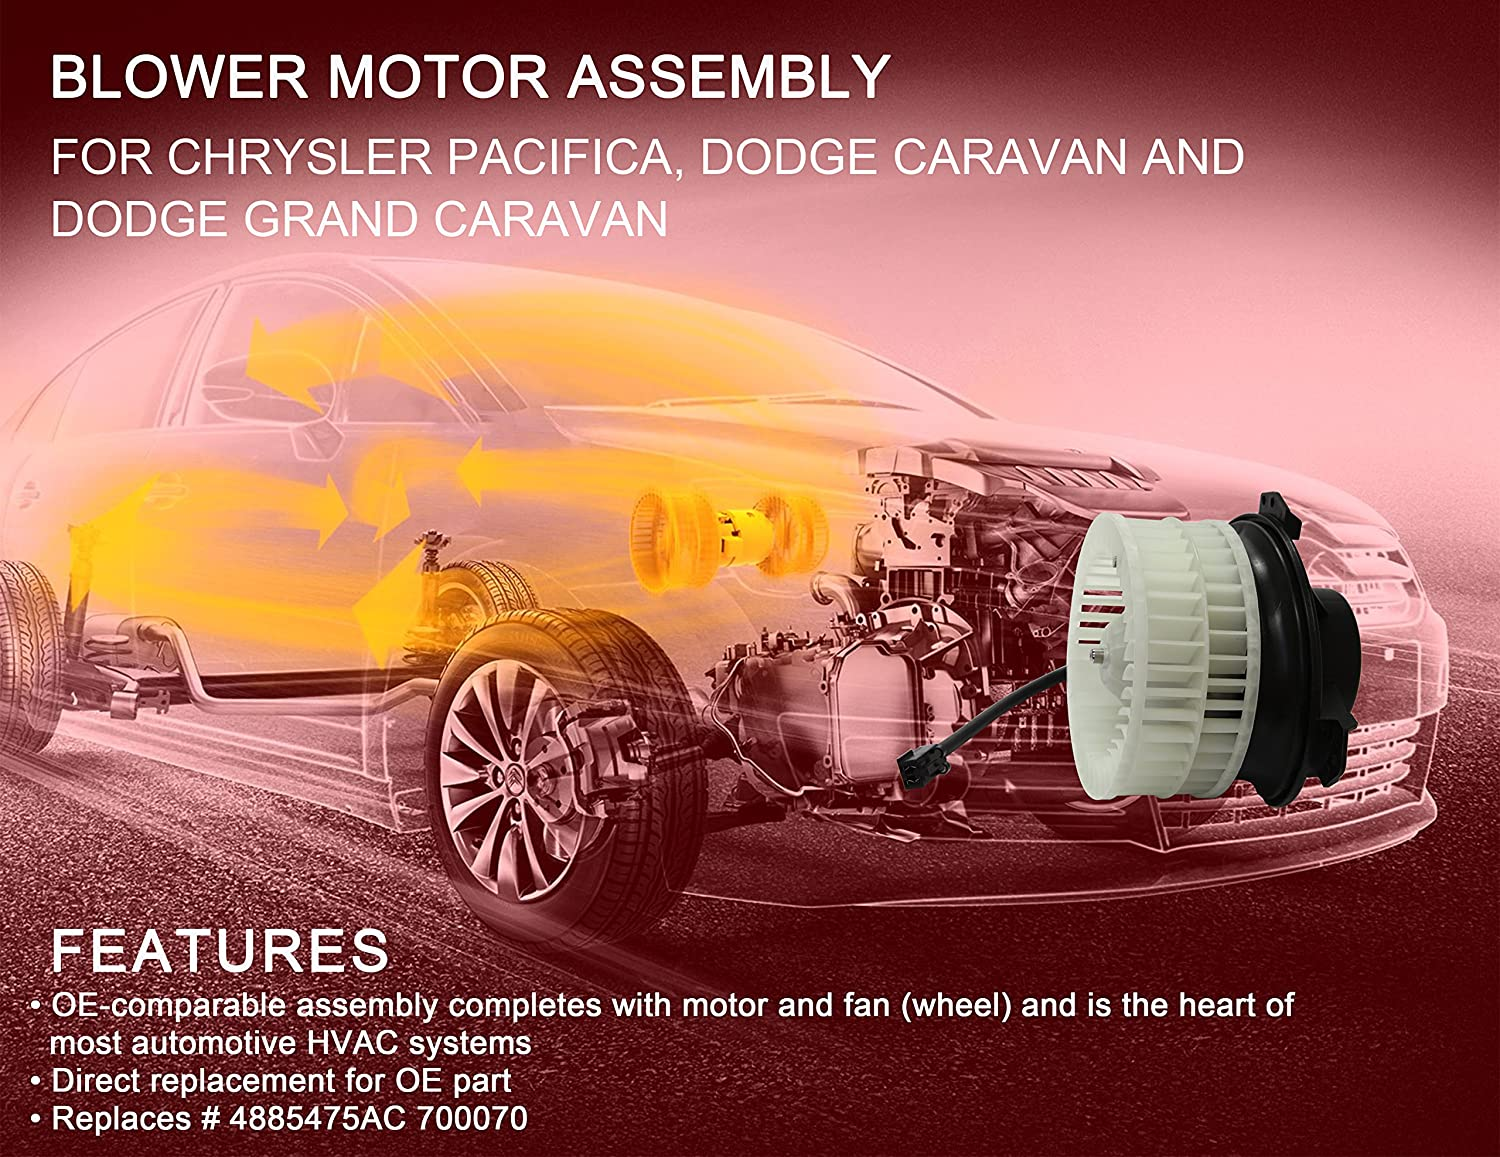 G002b Front Blower Motor Assembly For 04 08 Chrysler Pacifica Heater Fan Wiring Diagram 01 07 Town Country Dodge Caravan Grand Caravanreplaces 4885475ac